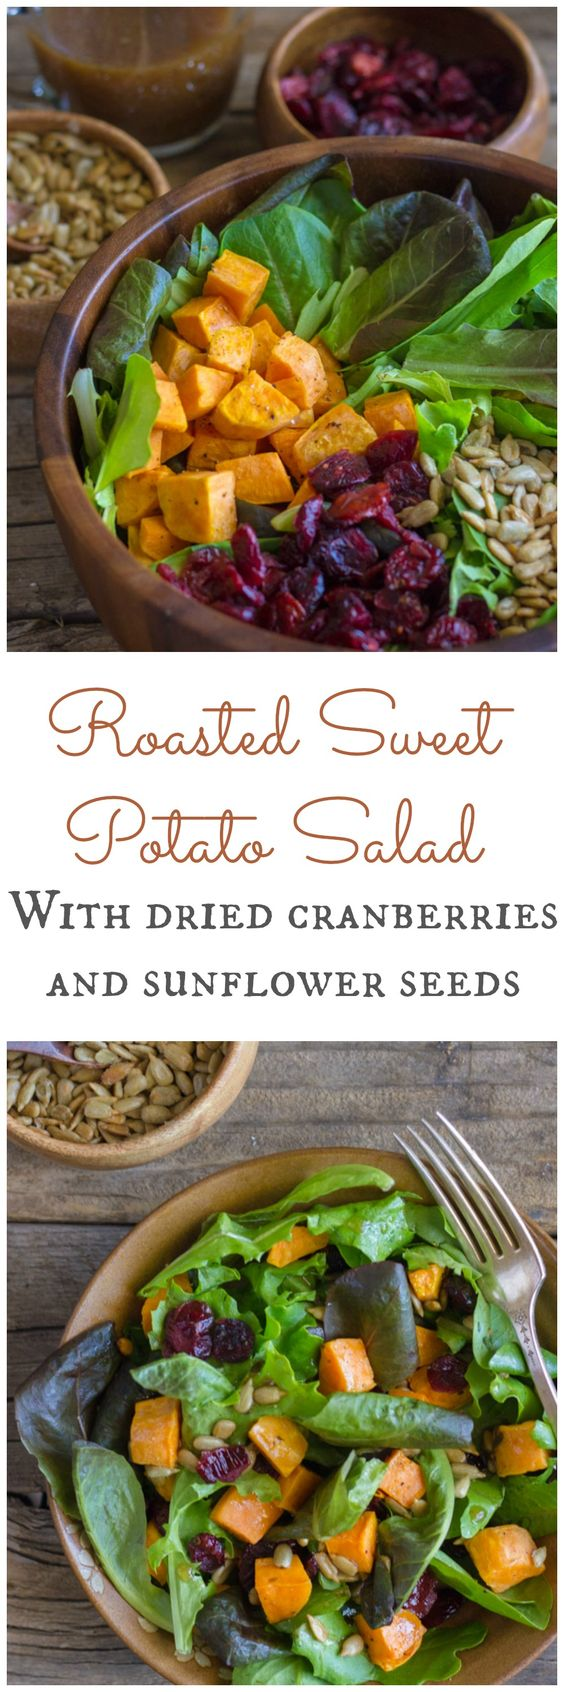 Roasted Sweet Potato Salad with dried cranberries, sunflower..